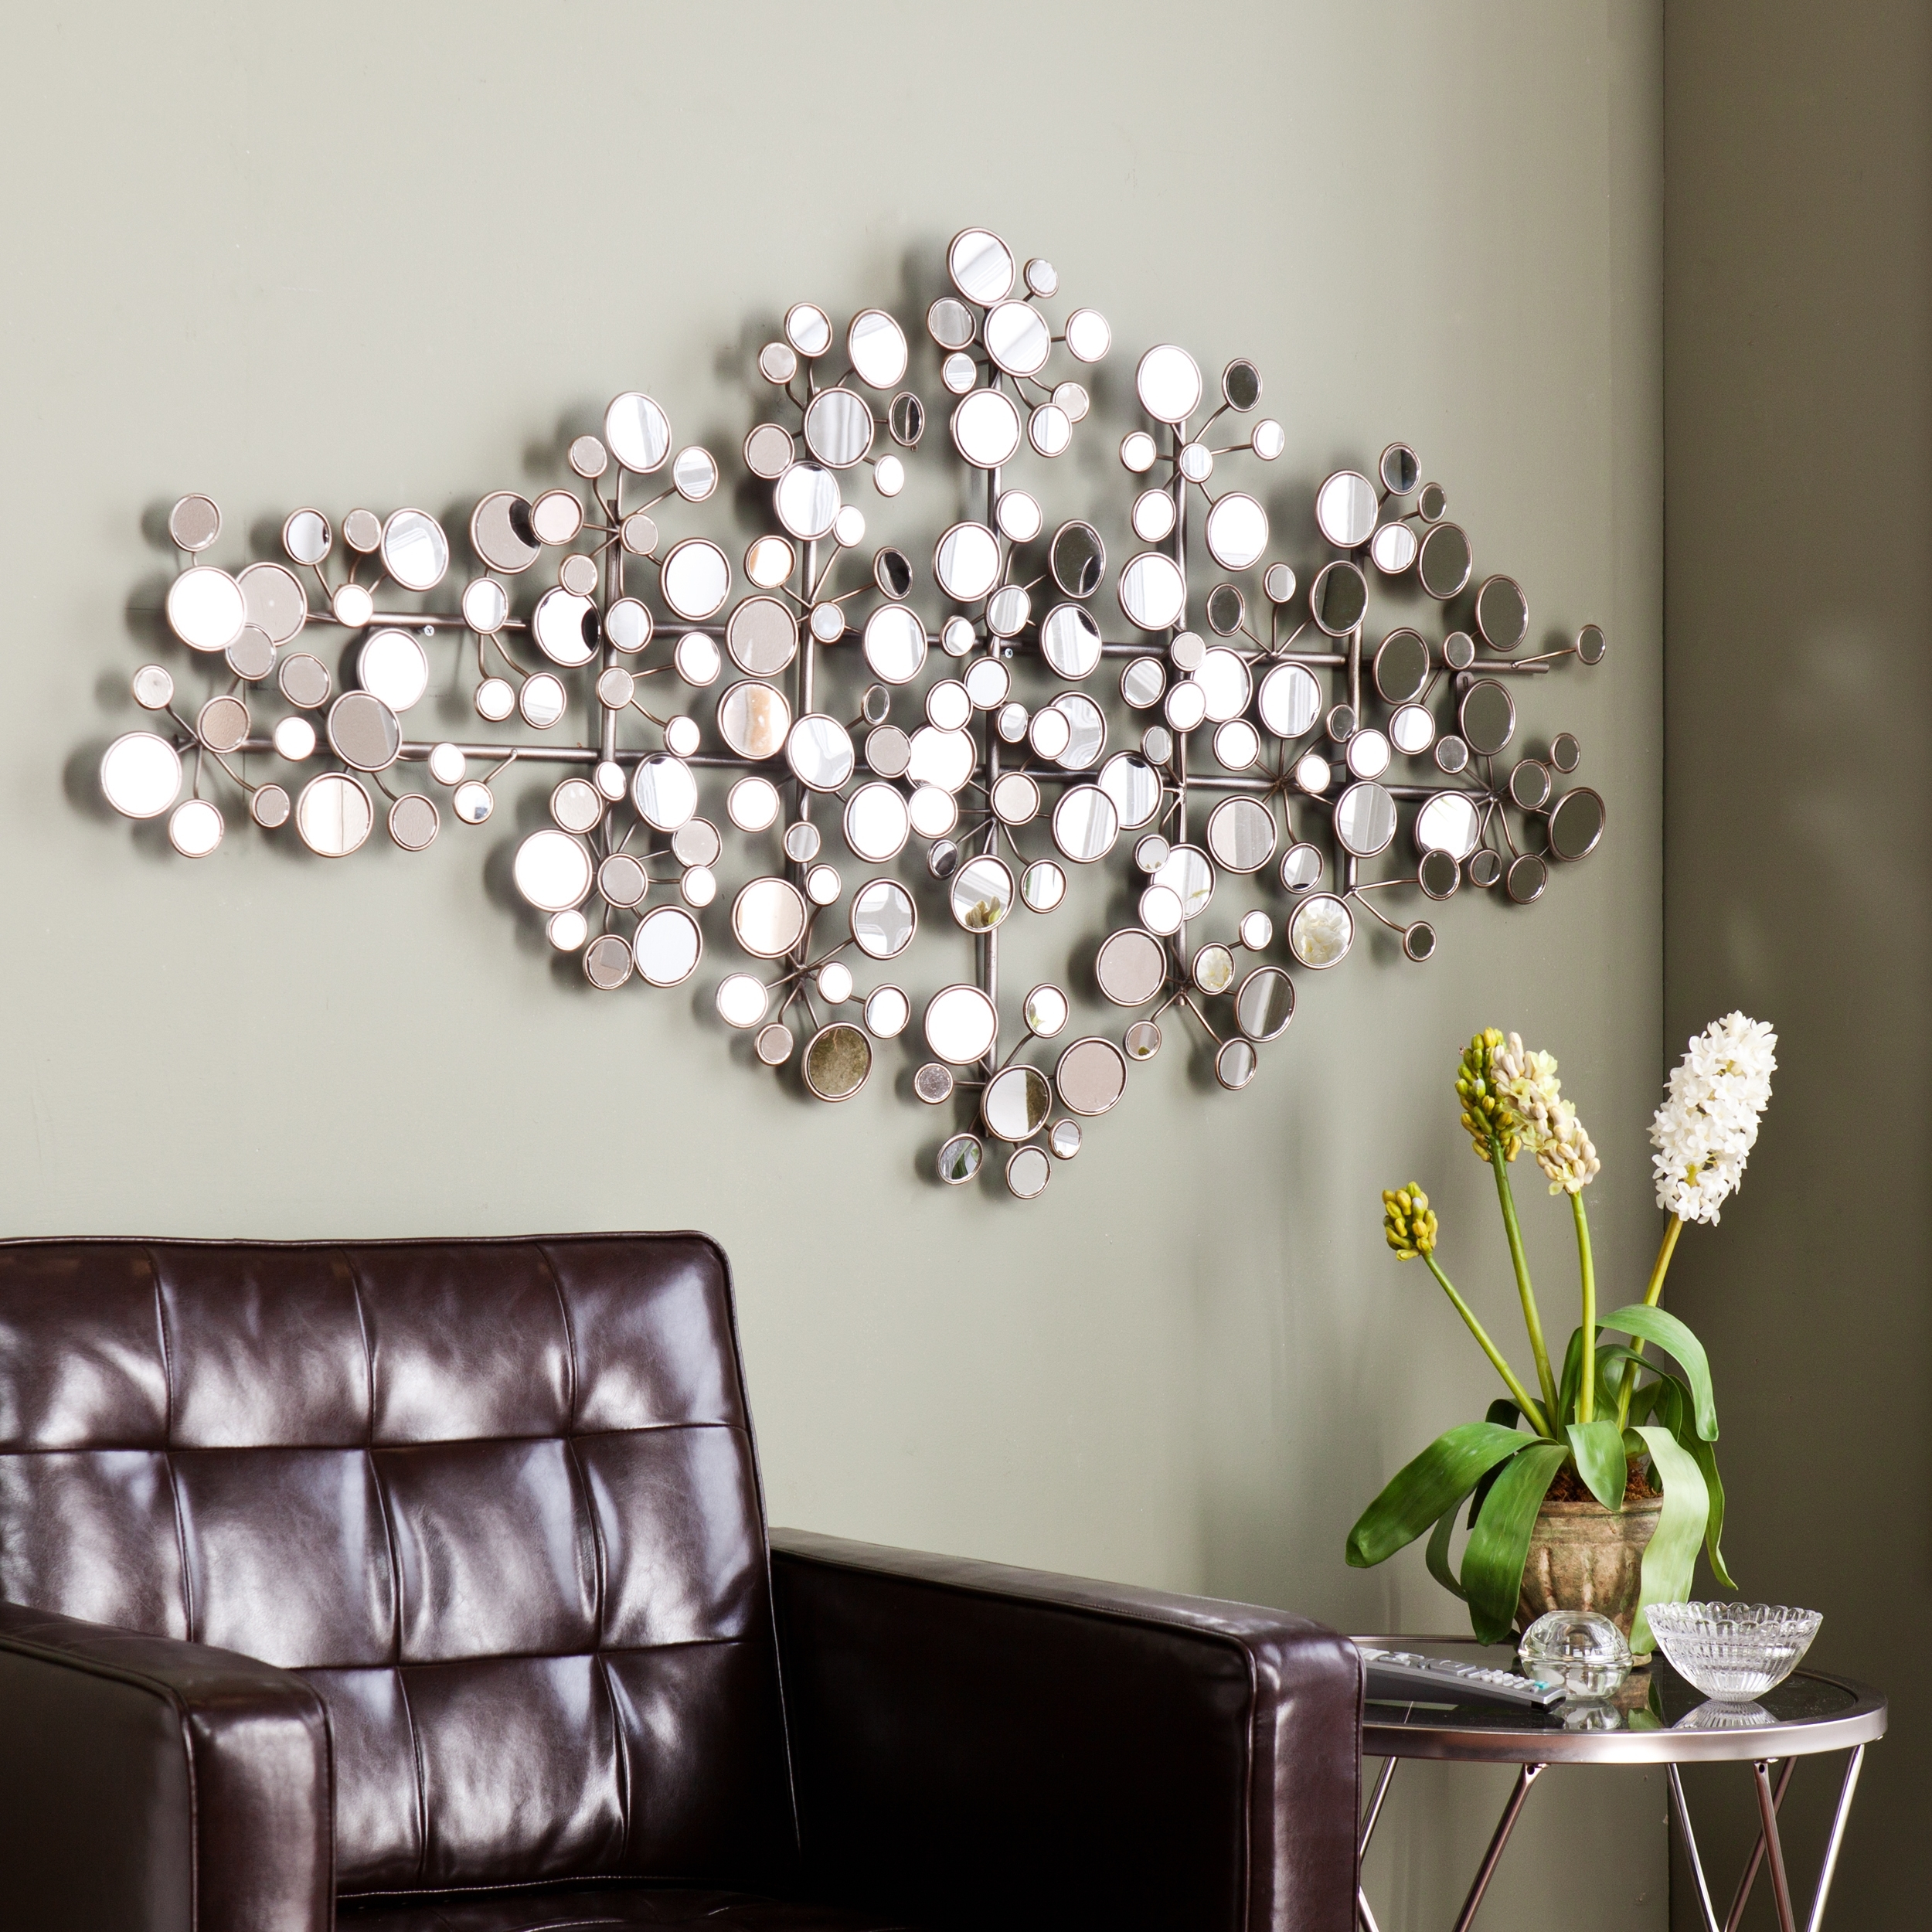 Recent This Upton Home Olivia Mirrored Metal Wall Sculpture Features A Within Modern Mirrored Wall Art (View 12 of 15)